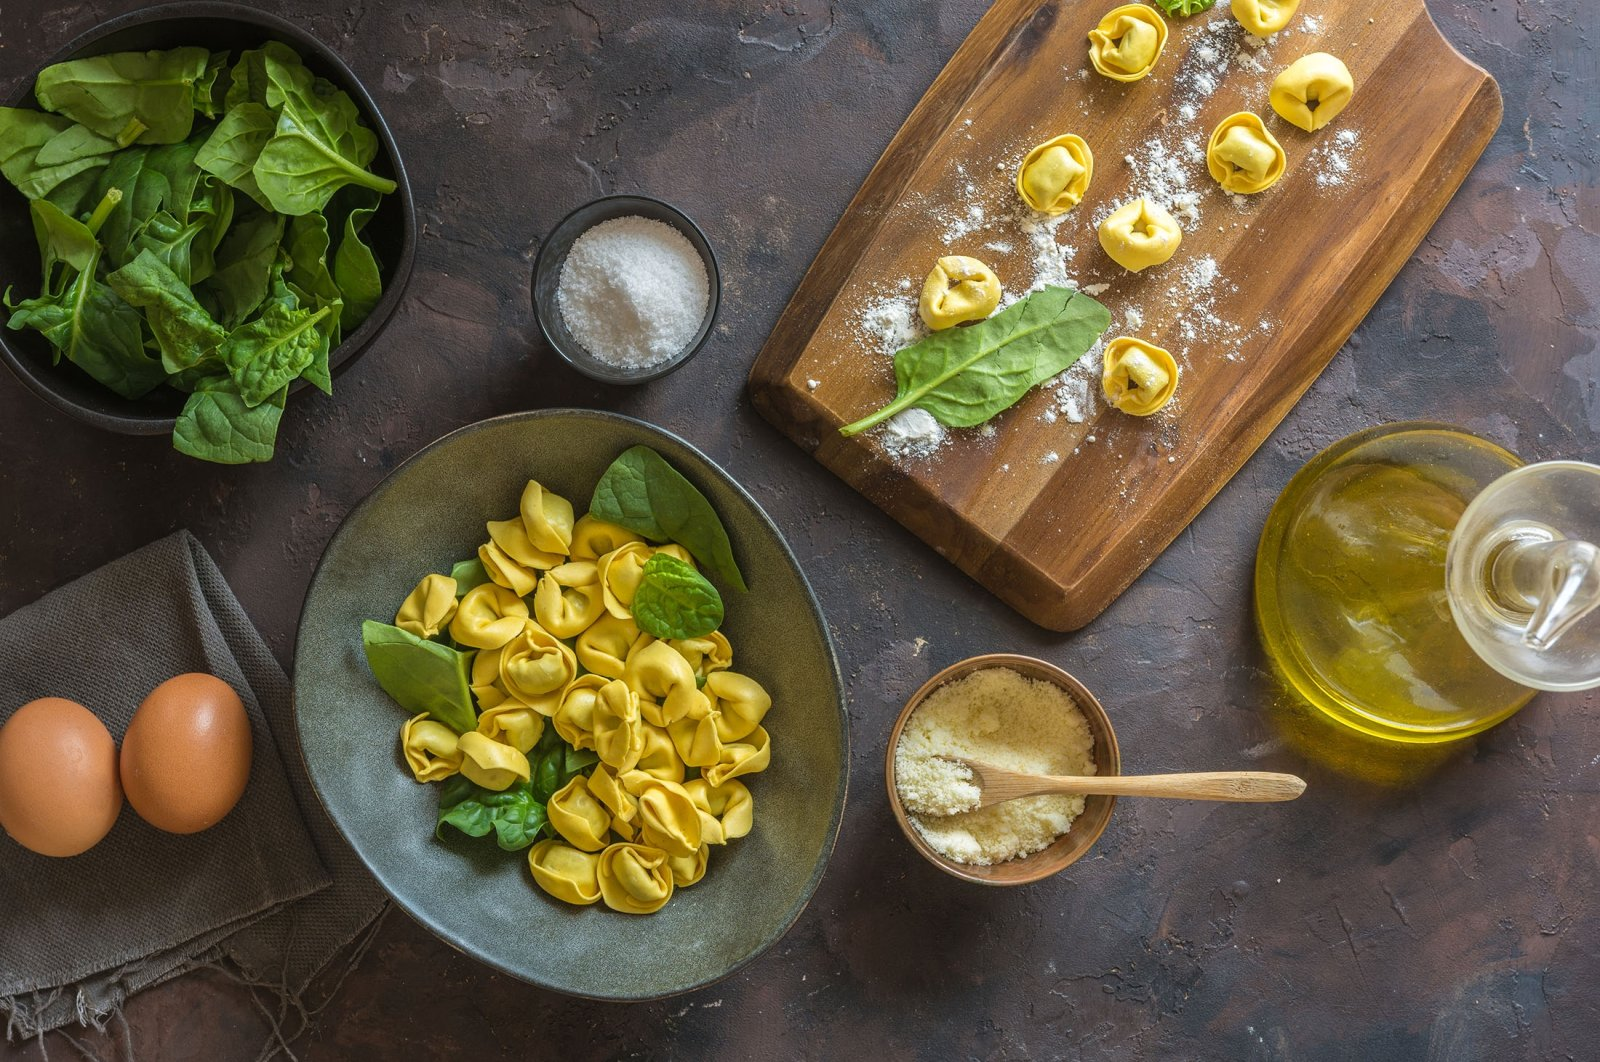 Tortelloni can be made with ricotta, spinach and/or parsley. (Shutterstock Photo)